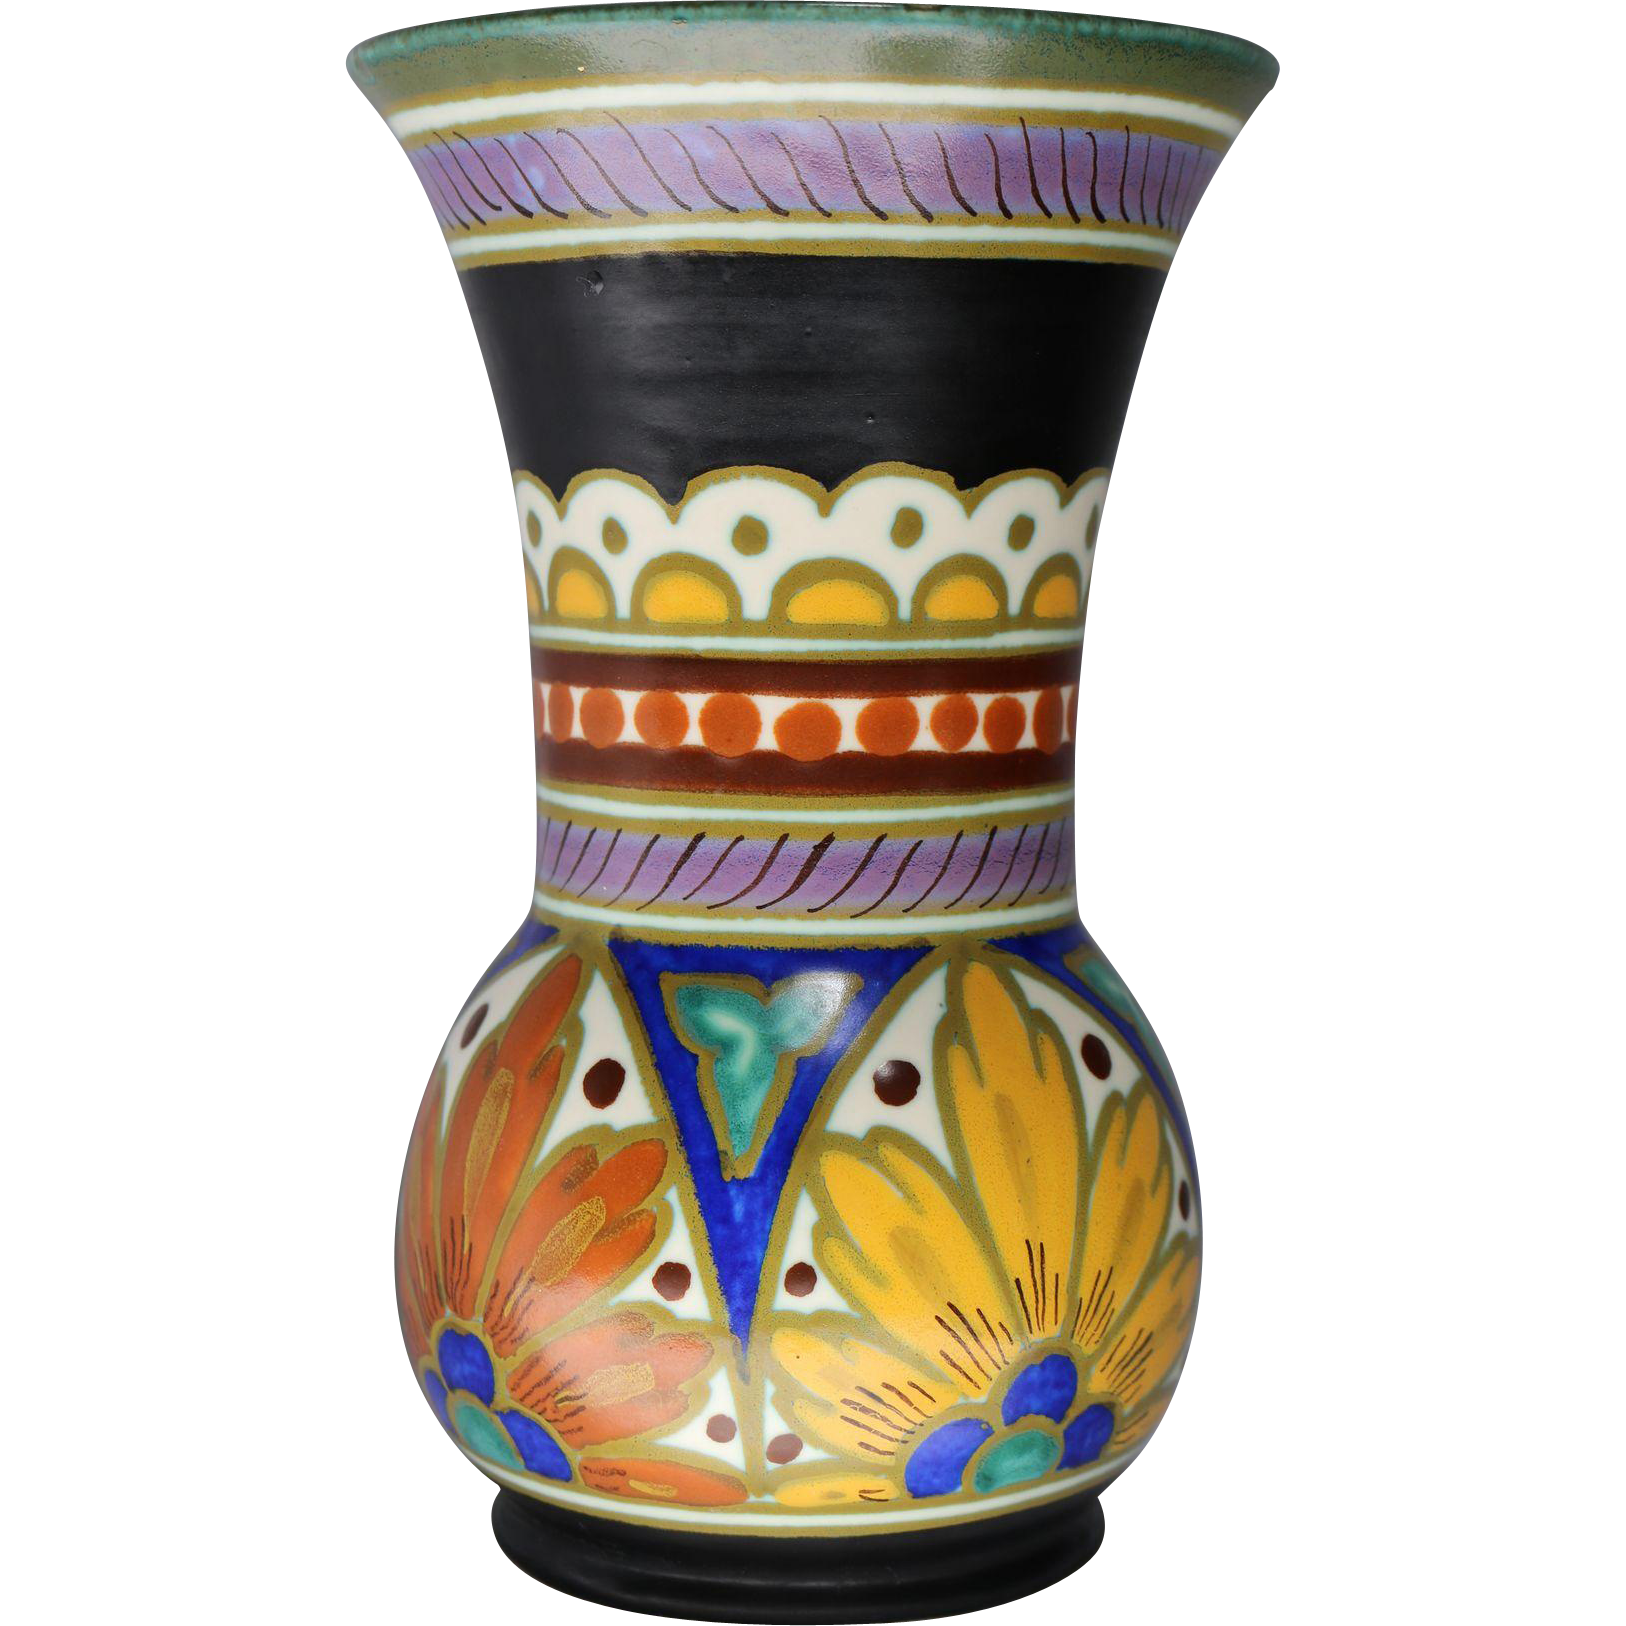 Gouda art pottery vase in desire royal pattern circa 1950s for Pottery patterns